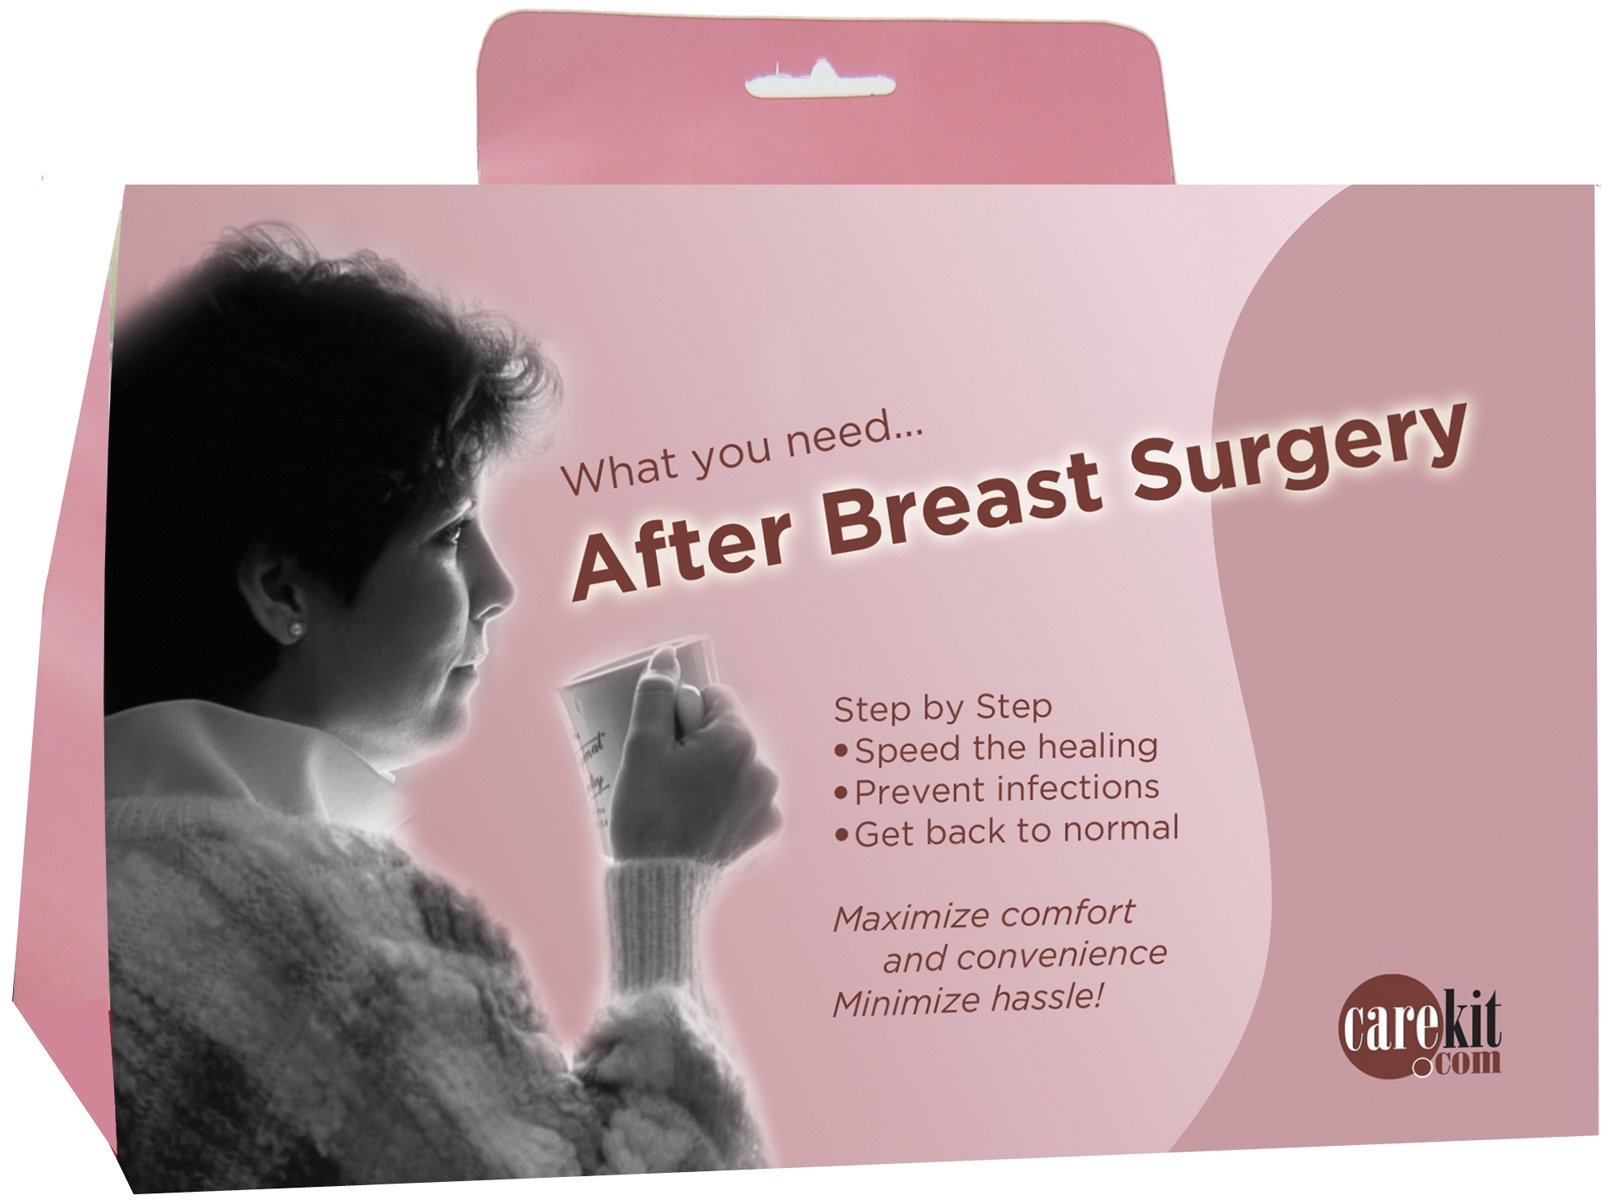 CSI Care Kit After Breast Surgery Care Kit